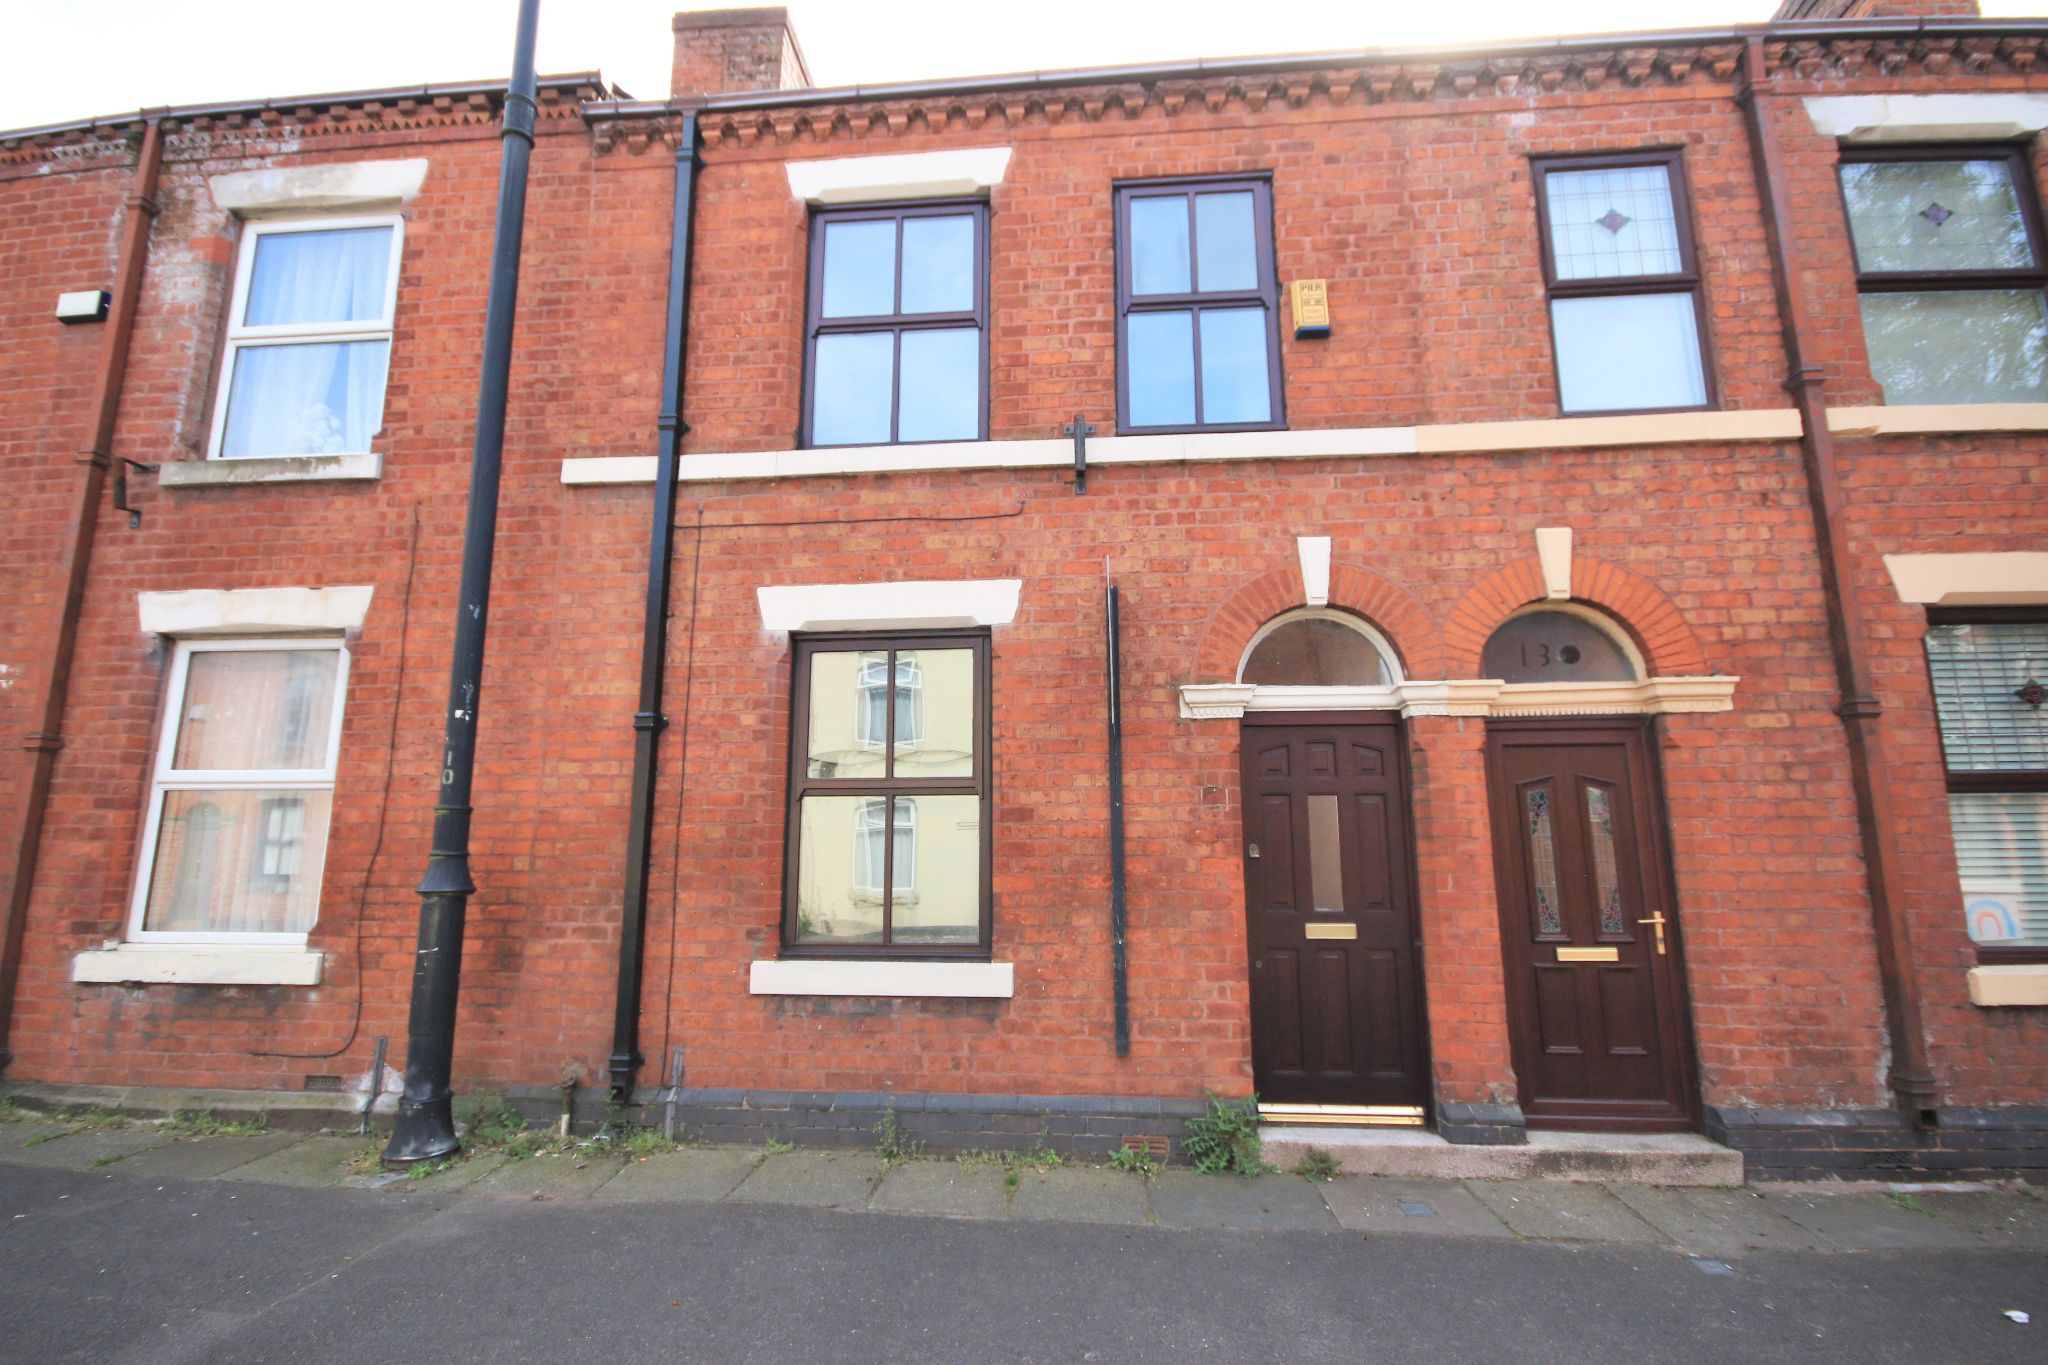 2 Bedroom Mid Terraced House To Rent - Photograph 1